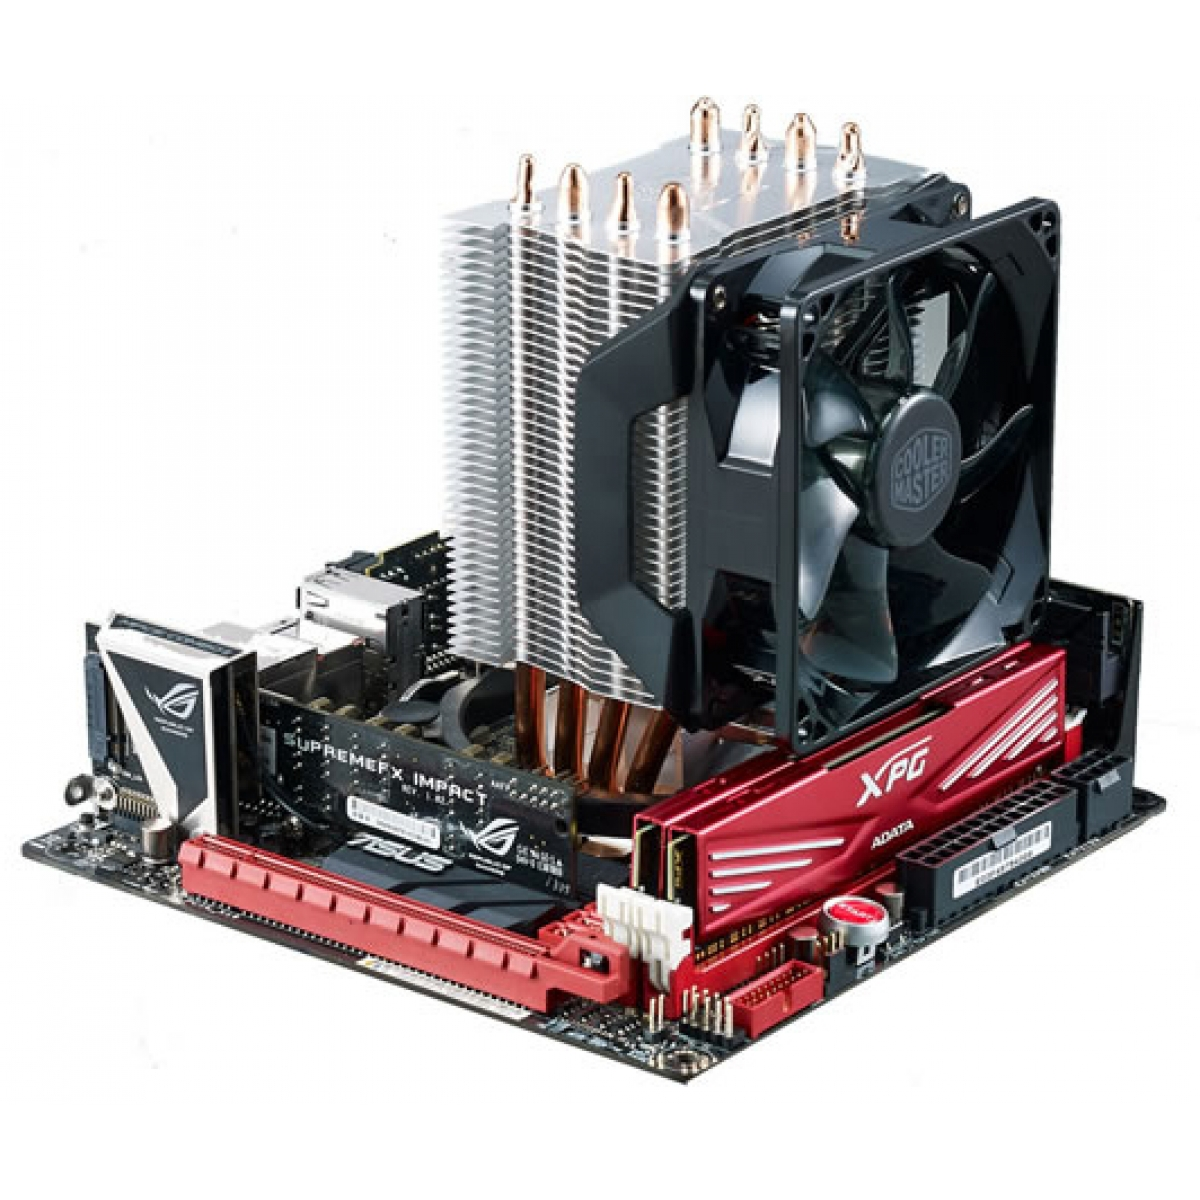 Cooler para Processador Cooler Master Hyper H410R, LED Red 92mm, Intel-AMD, RR-H410-20PK-R1